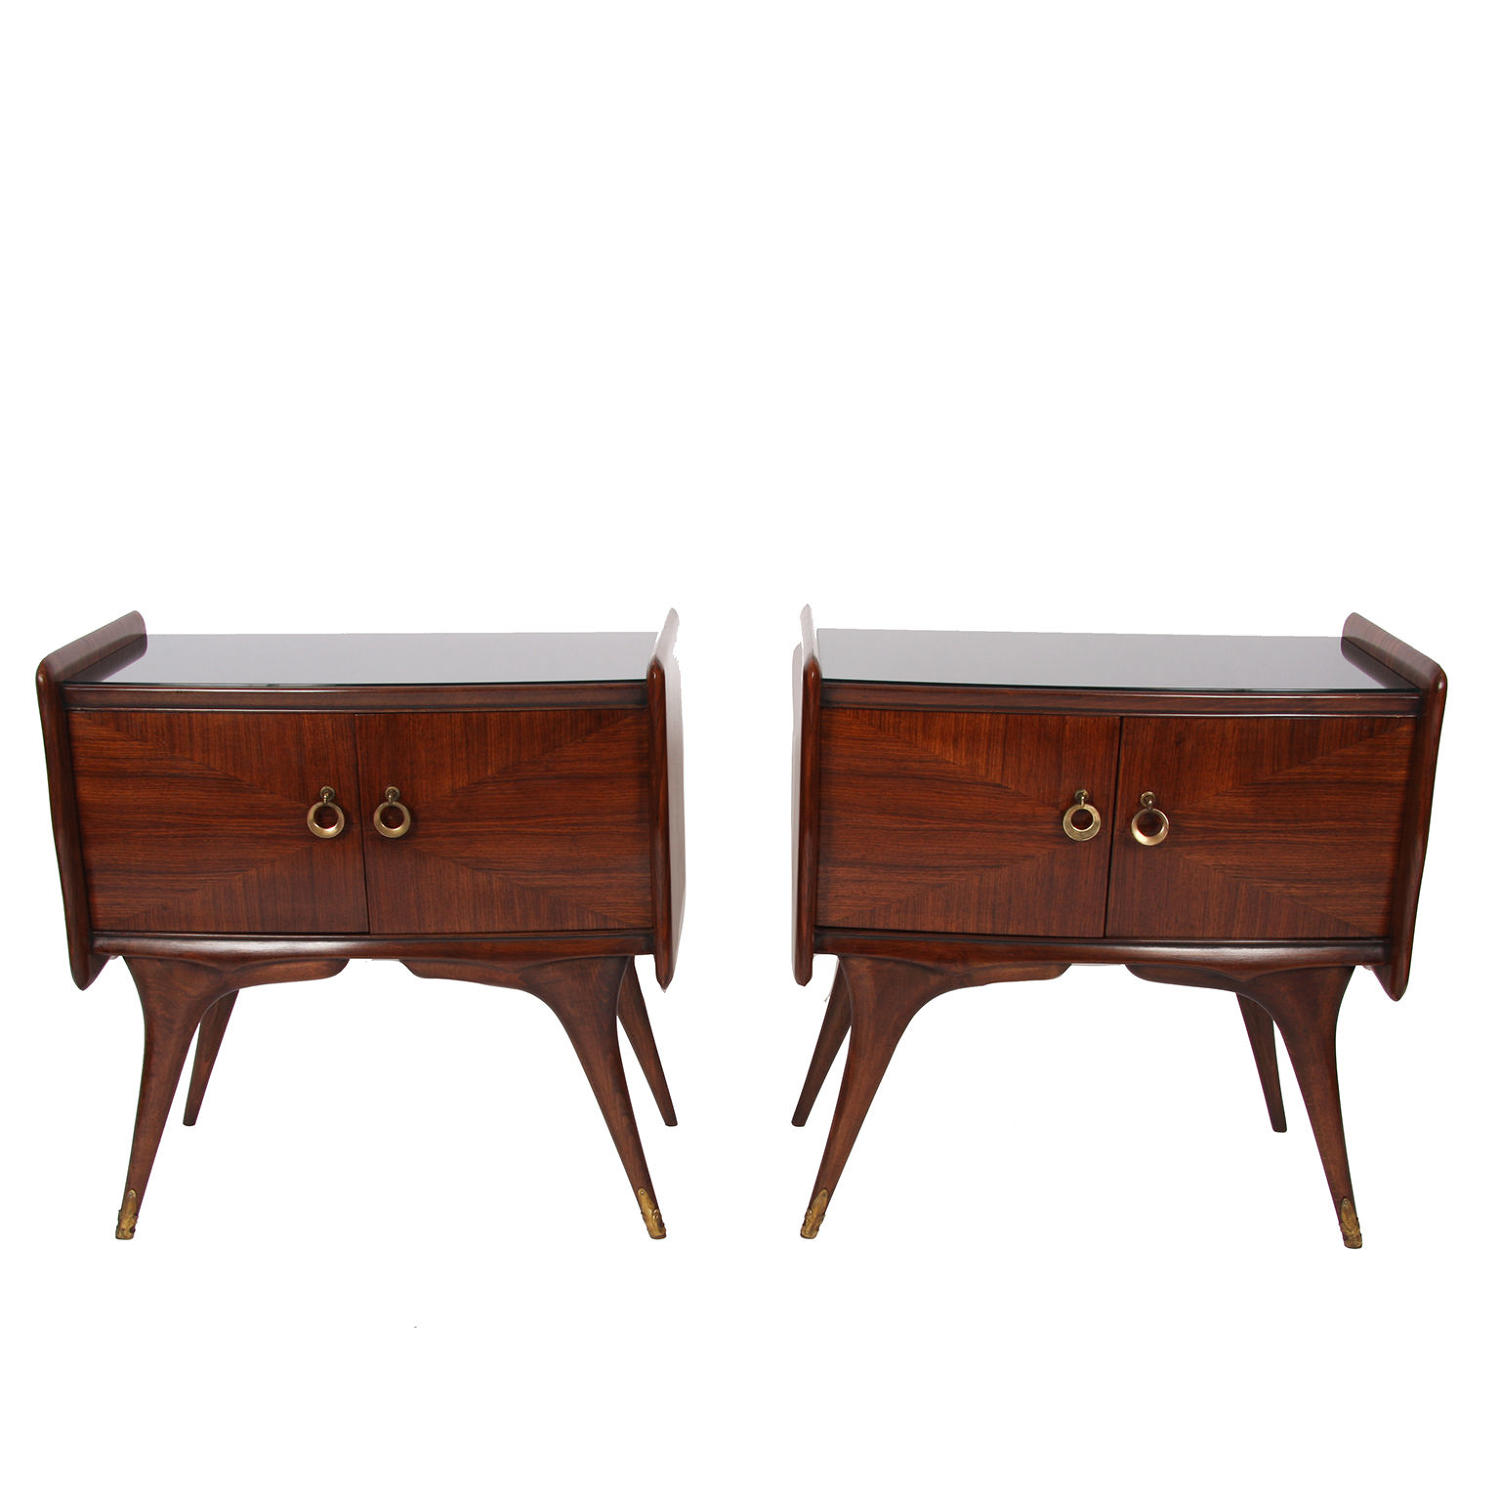 Pair of Gio Ponti Style Bedside Tables